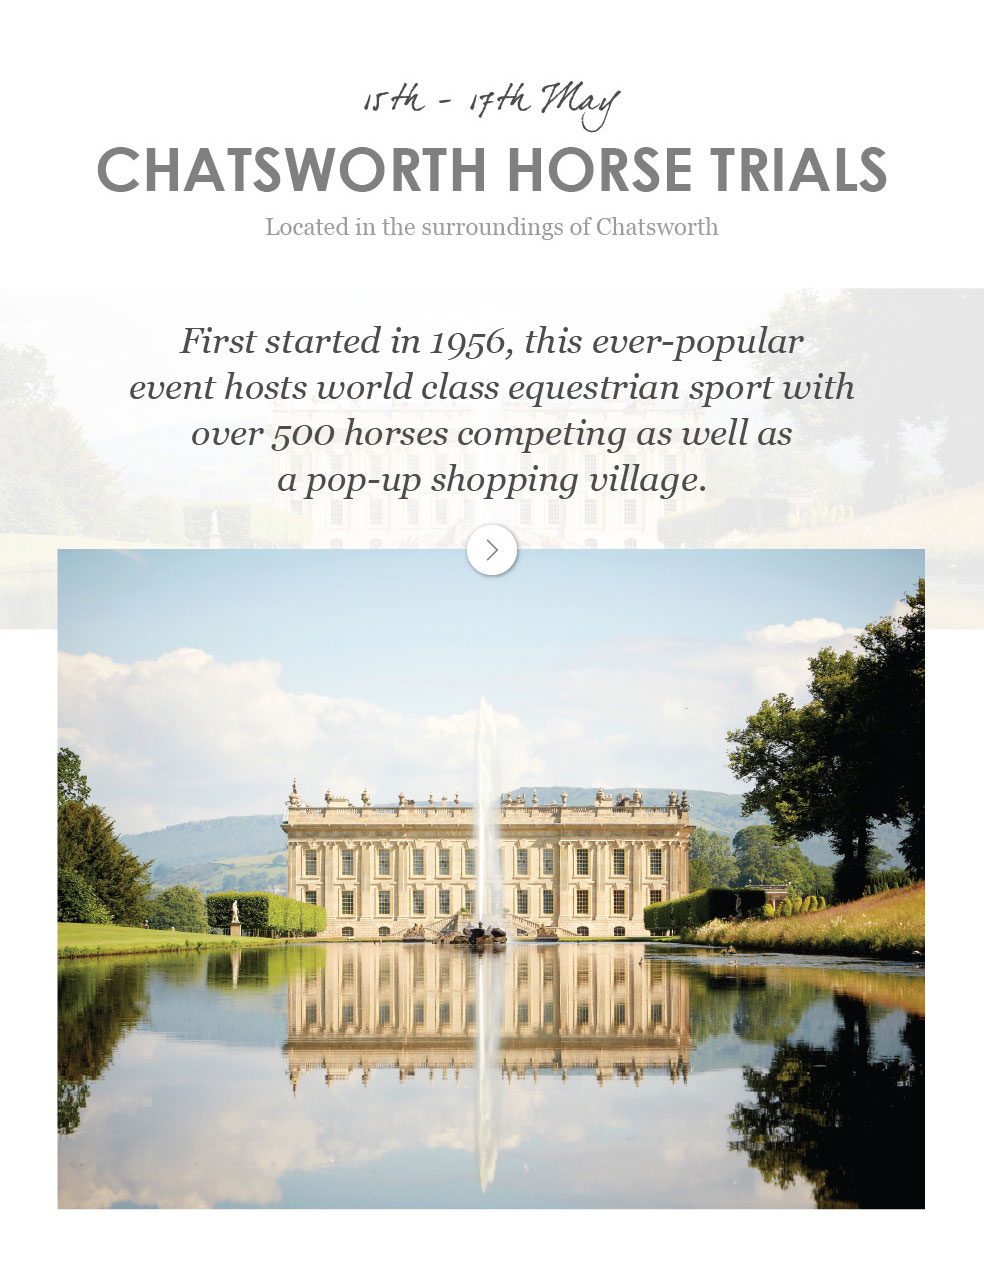 Chatsworth Horse Trials - 15th - 17th May